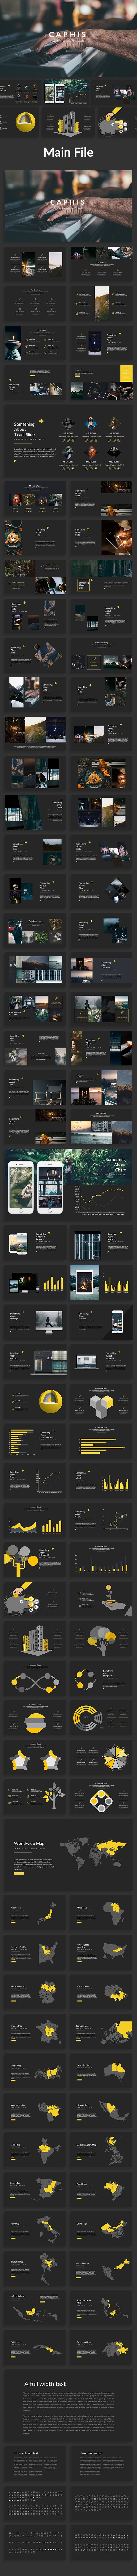 Caphis Creative Powerpoint Template